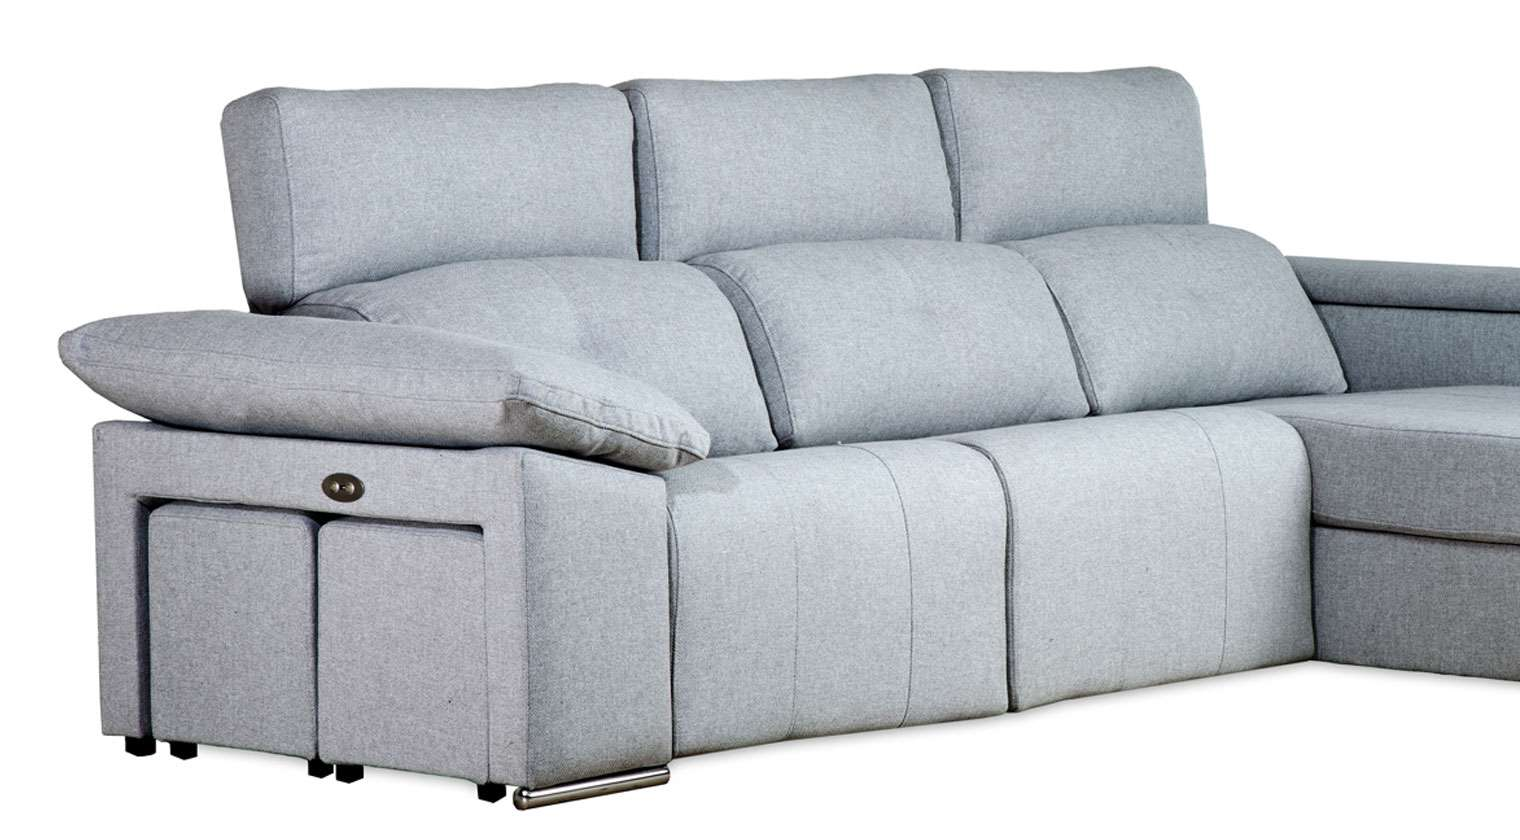 tumb-Chaise-Longue-Relax-CALIPSO-3